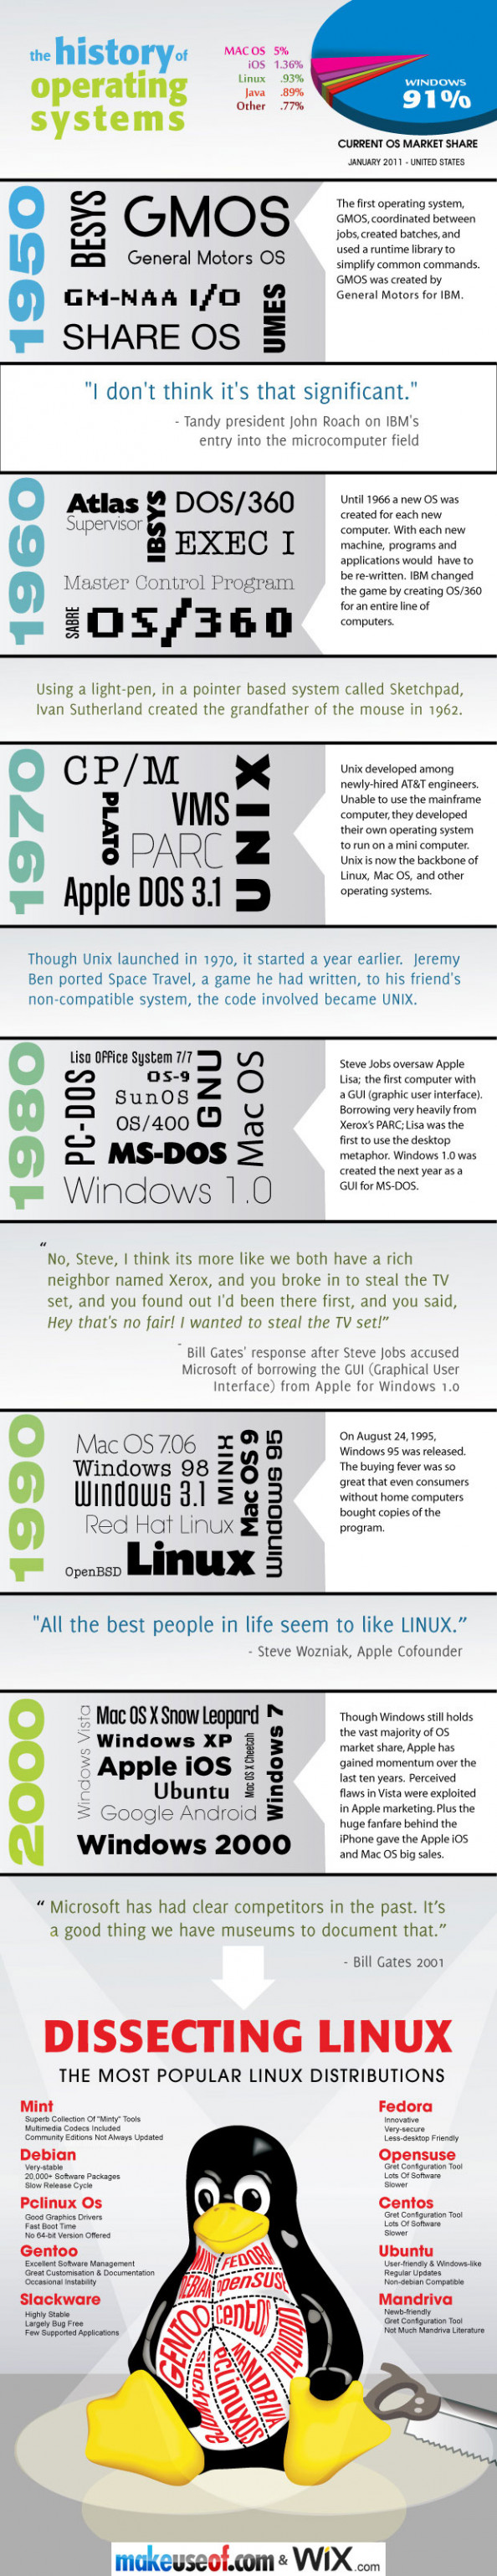 History of Operating Systems Infographic